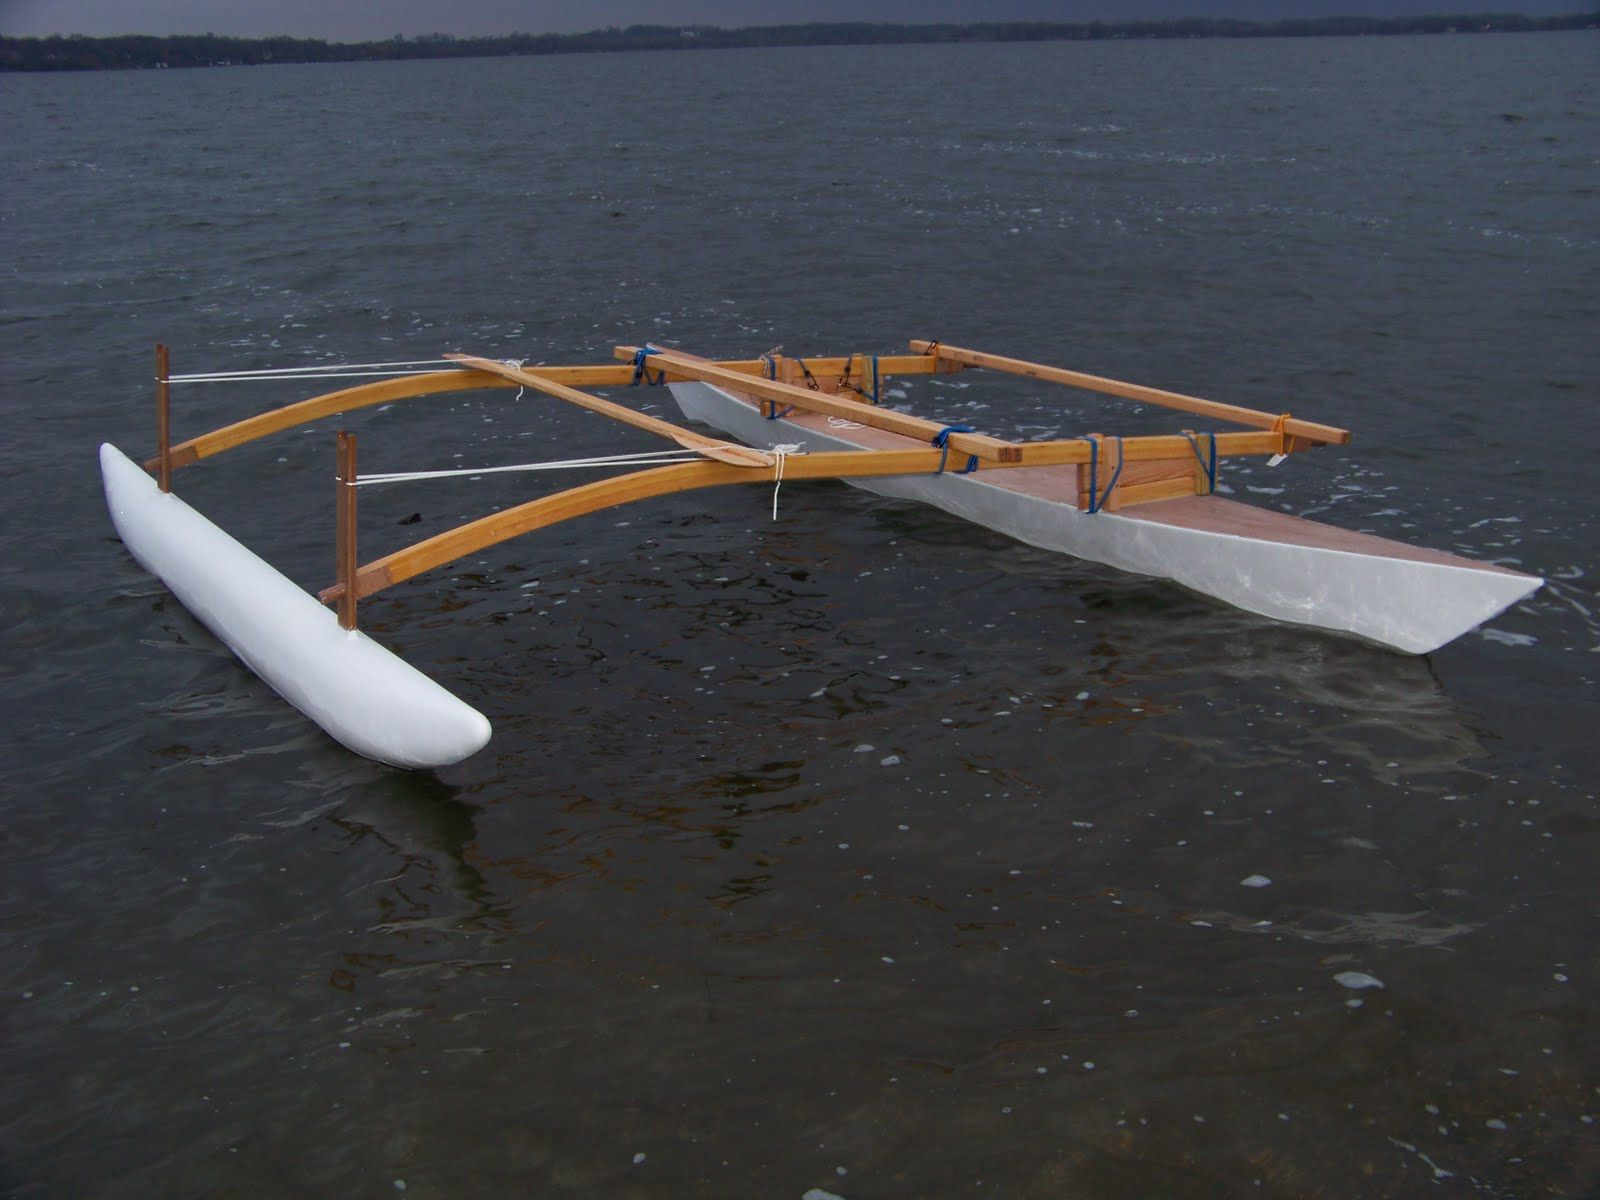 Doug Weir's Proa Project for Paddling Sailing and Marine Adventure: LAUNCH DAY FOR MY OUTRI ...